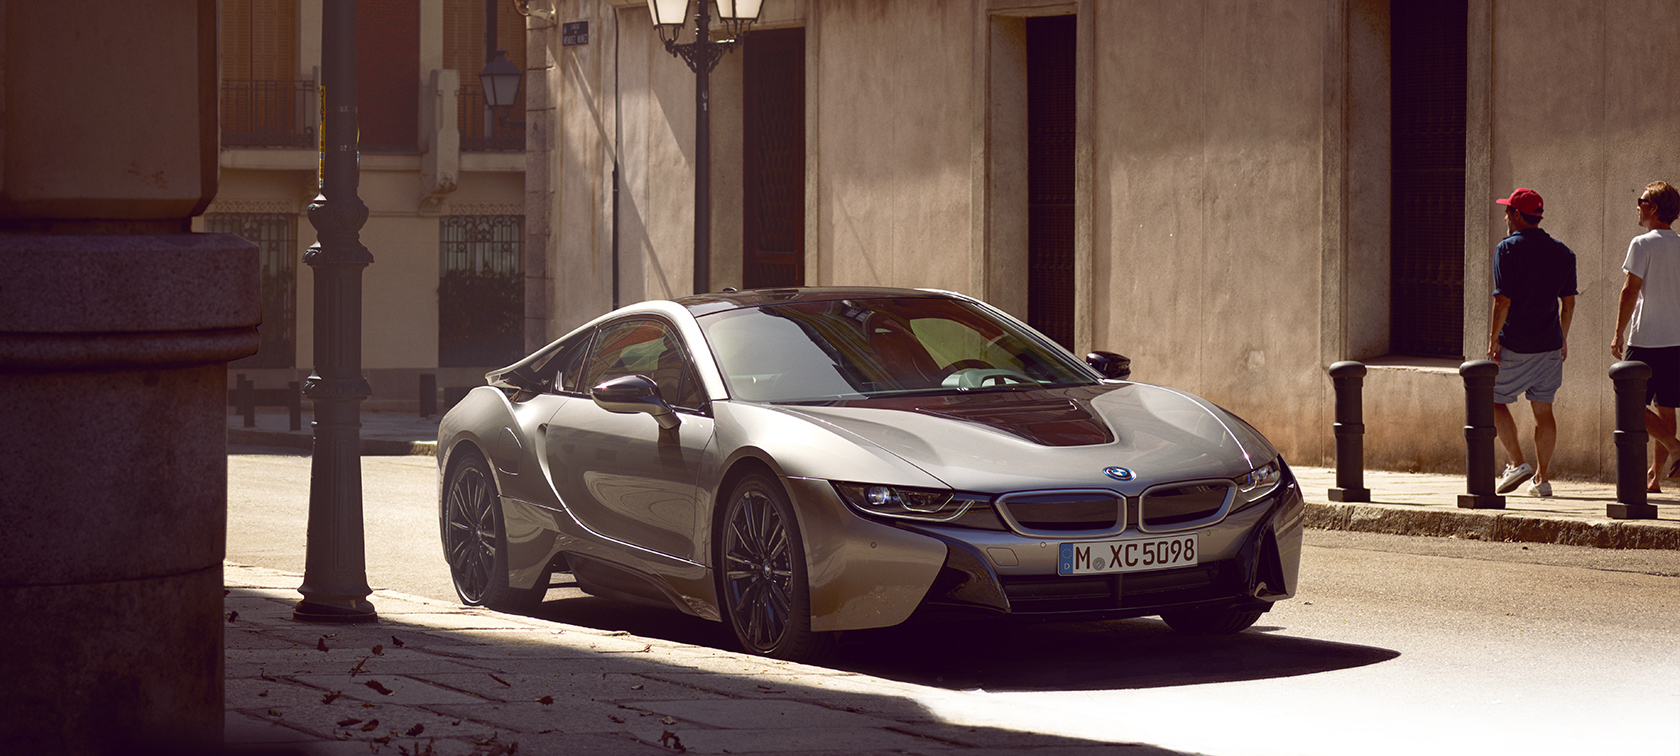 Bmw I8 Coupe A Nova Geracao Do Hibrido Plug In